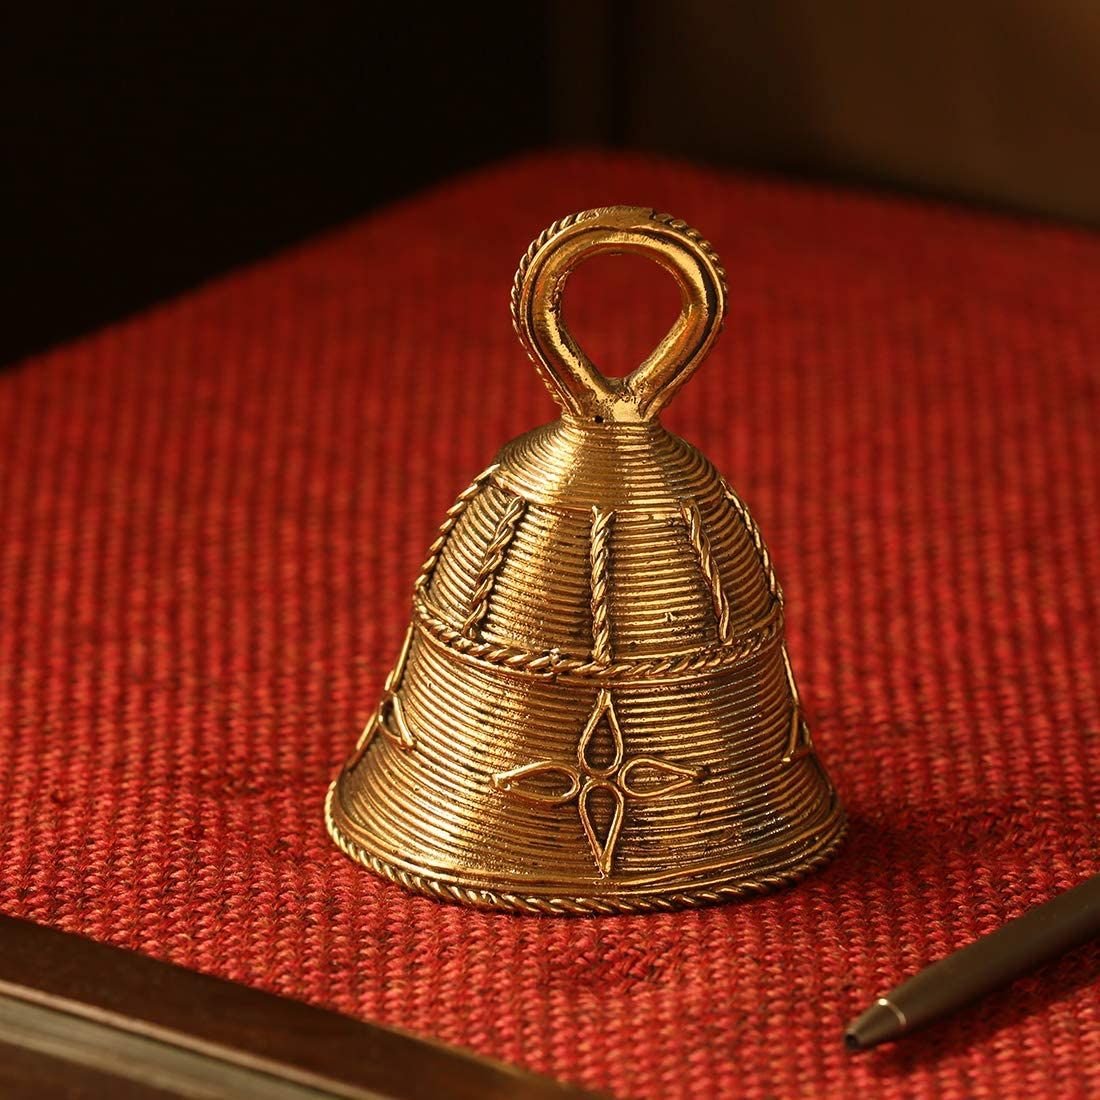 ExclusiveLane Indian 'Tinkling Melody' Handmade Brass Pooja Bell in Dhokra Art - Decorative Hanging Bells for Pooja Mandir Puja Bell Hangings Décor Metal Bells Pooja Items for Home Decoration